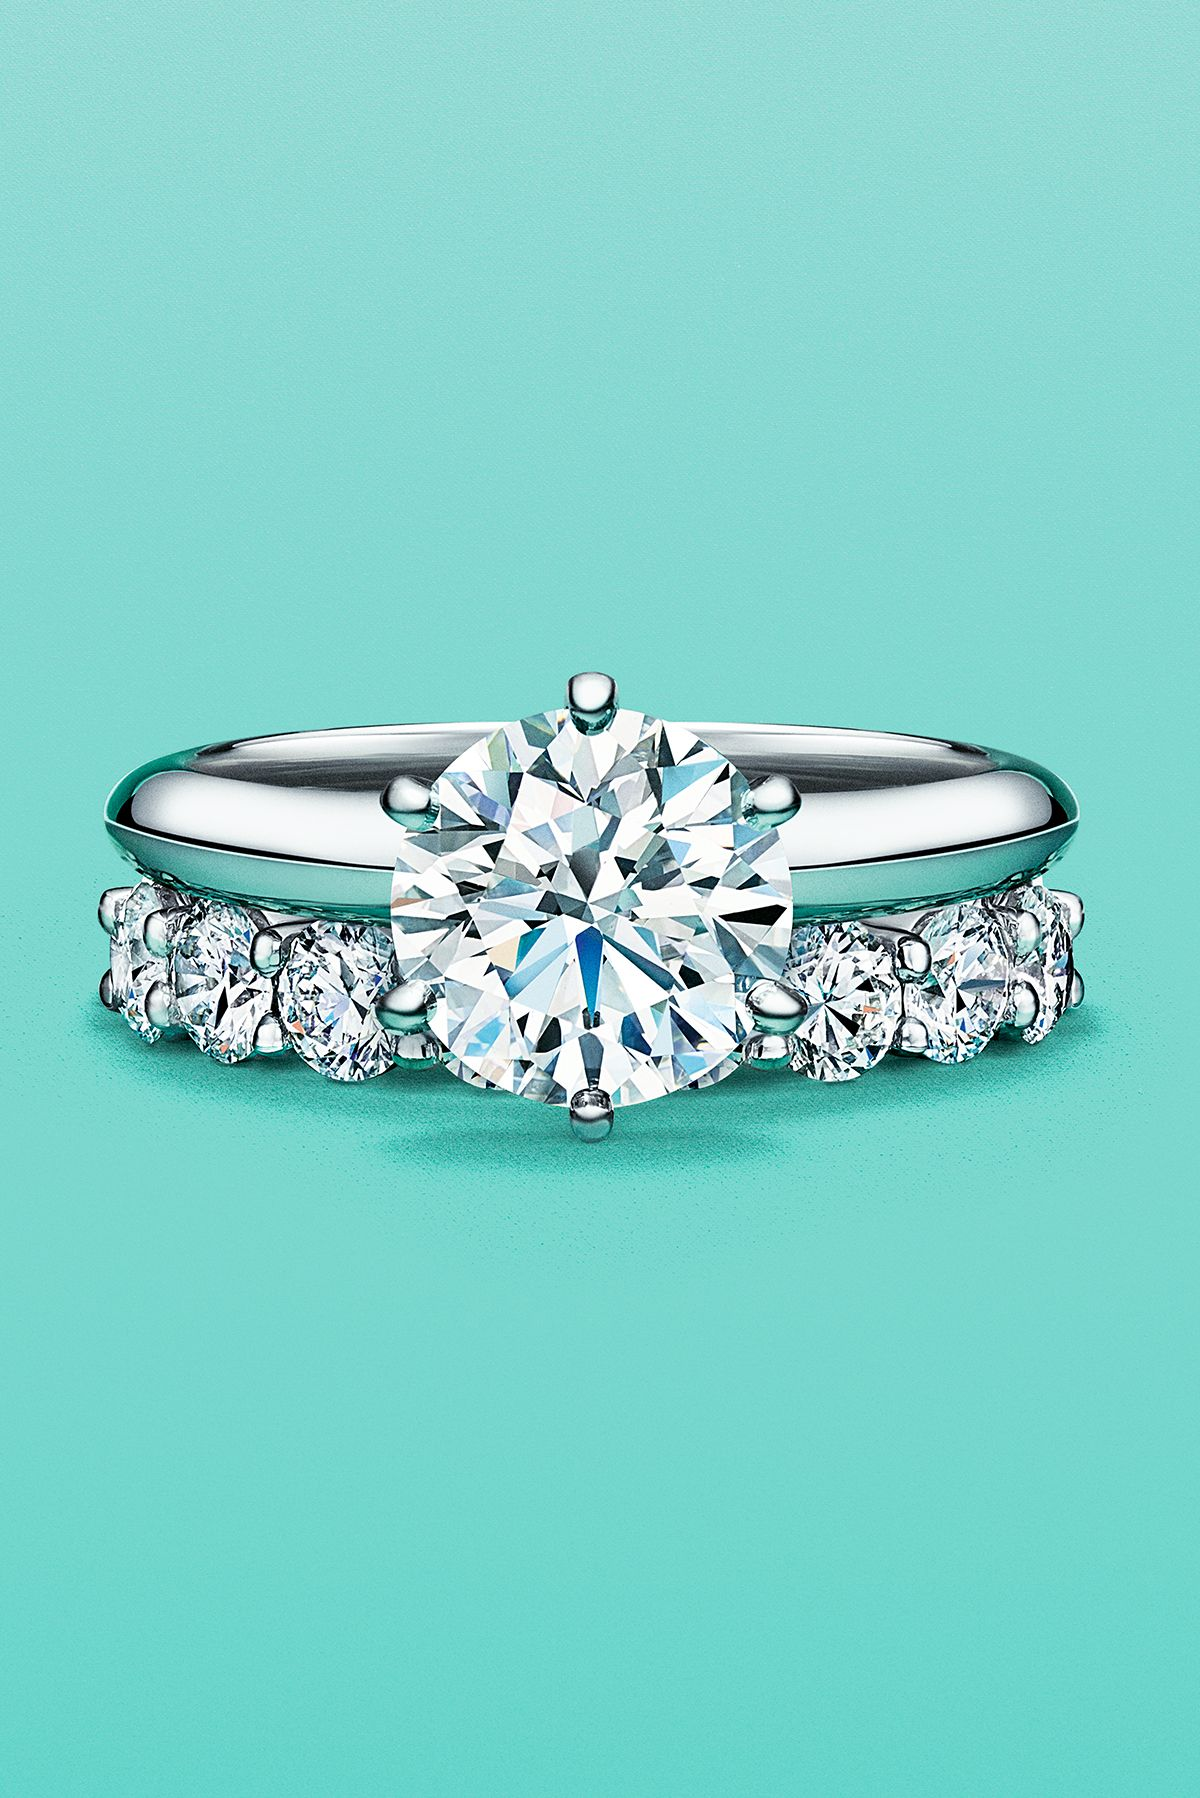 The Tiffany Setting And Tiffany Embrace Rings In Platinum